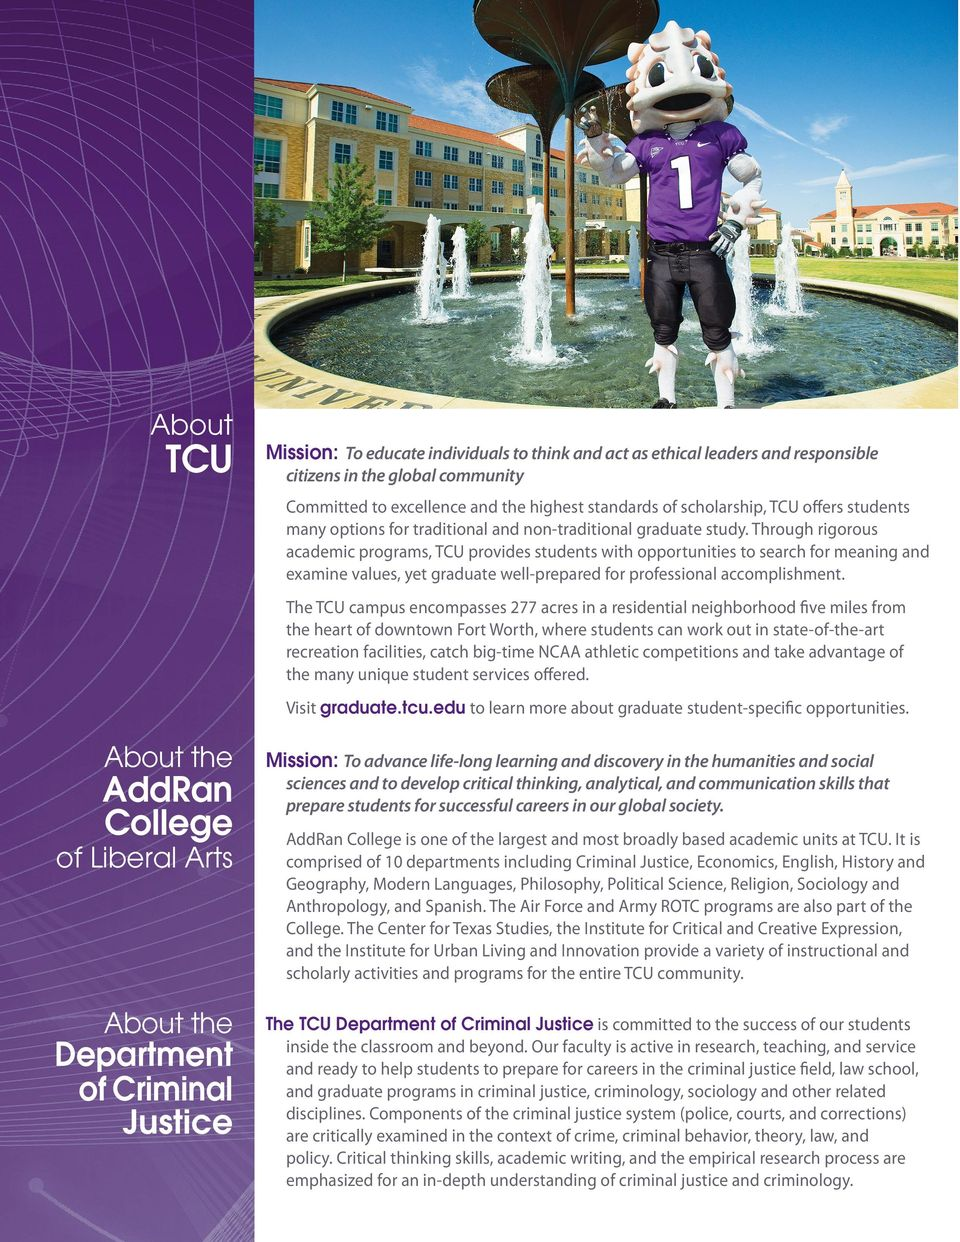 Through rigorous academic programs, TCU provides students with opportunities to search for meaning and examine values, yet graduate well-prepared for professional accomplishment.